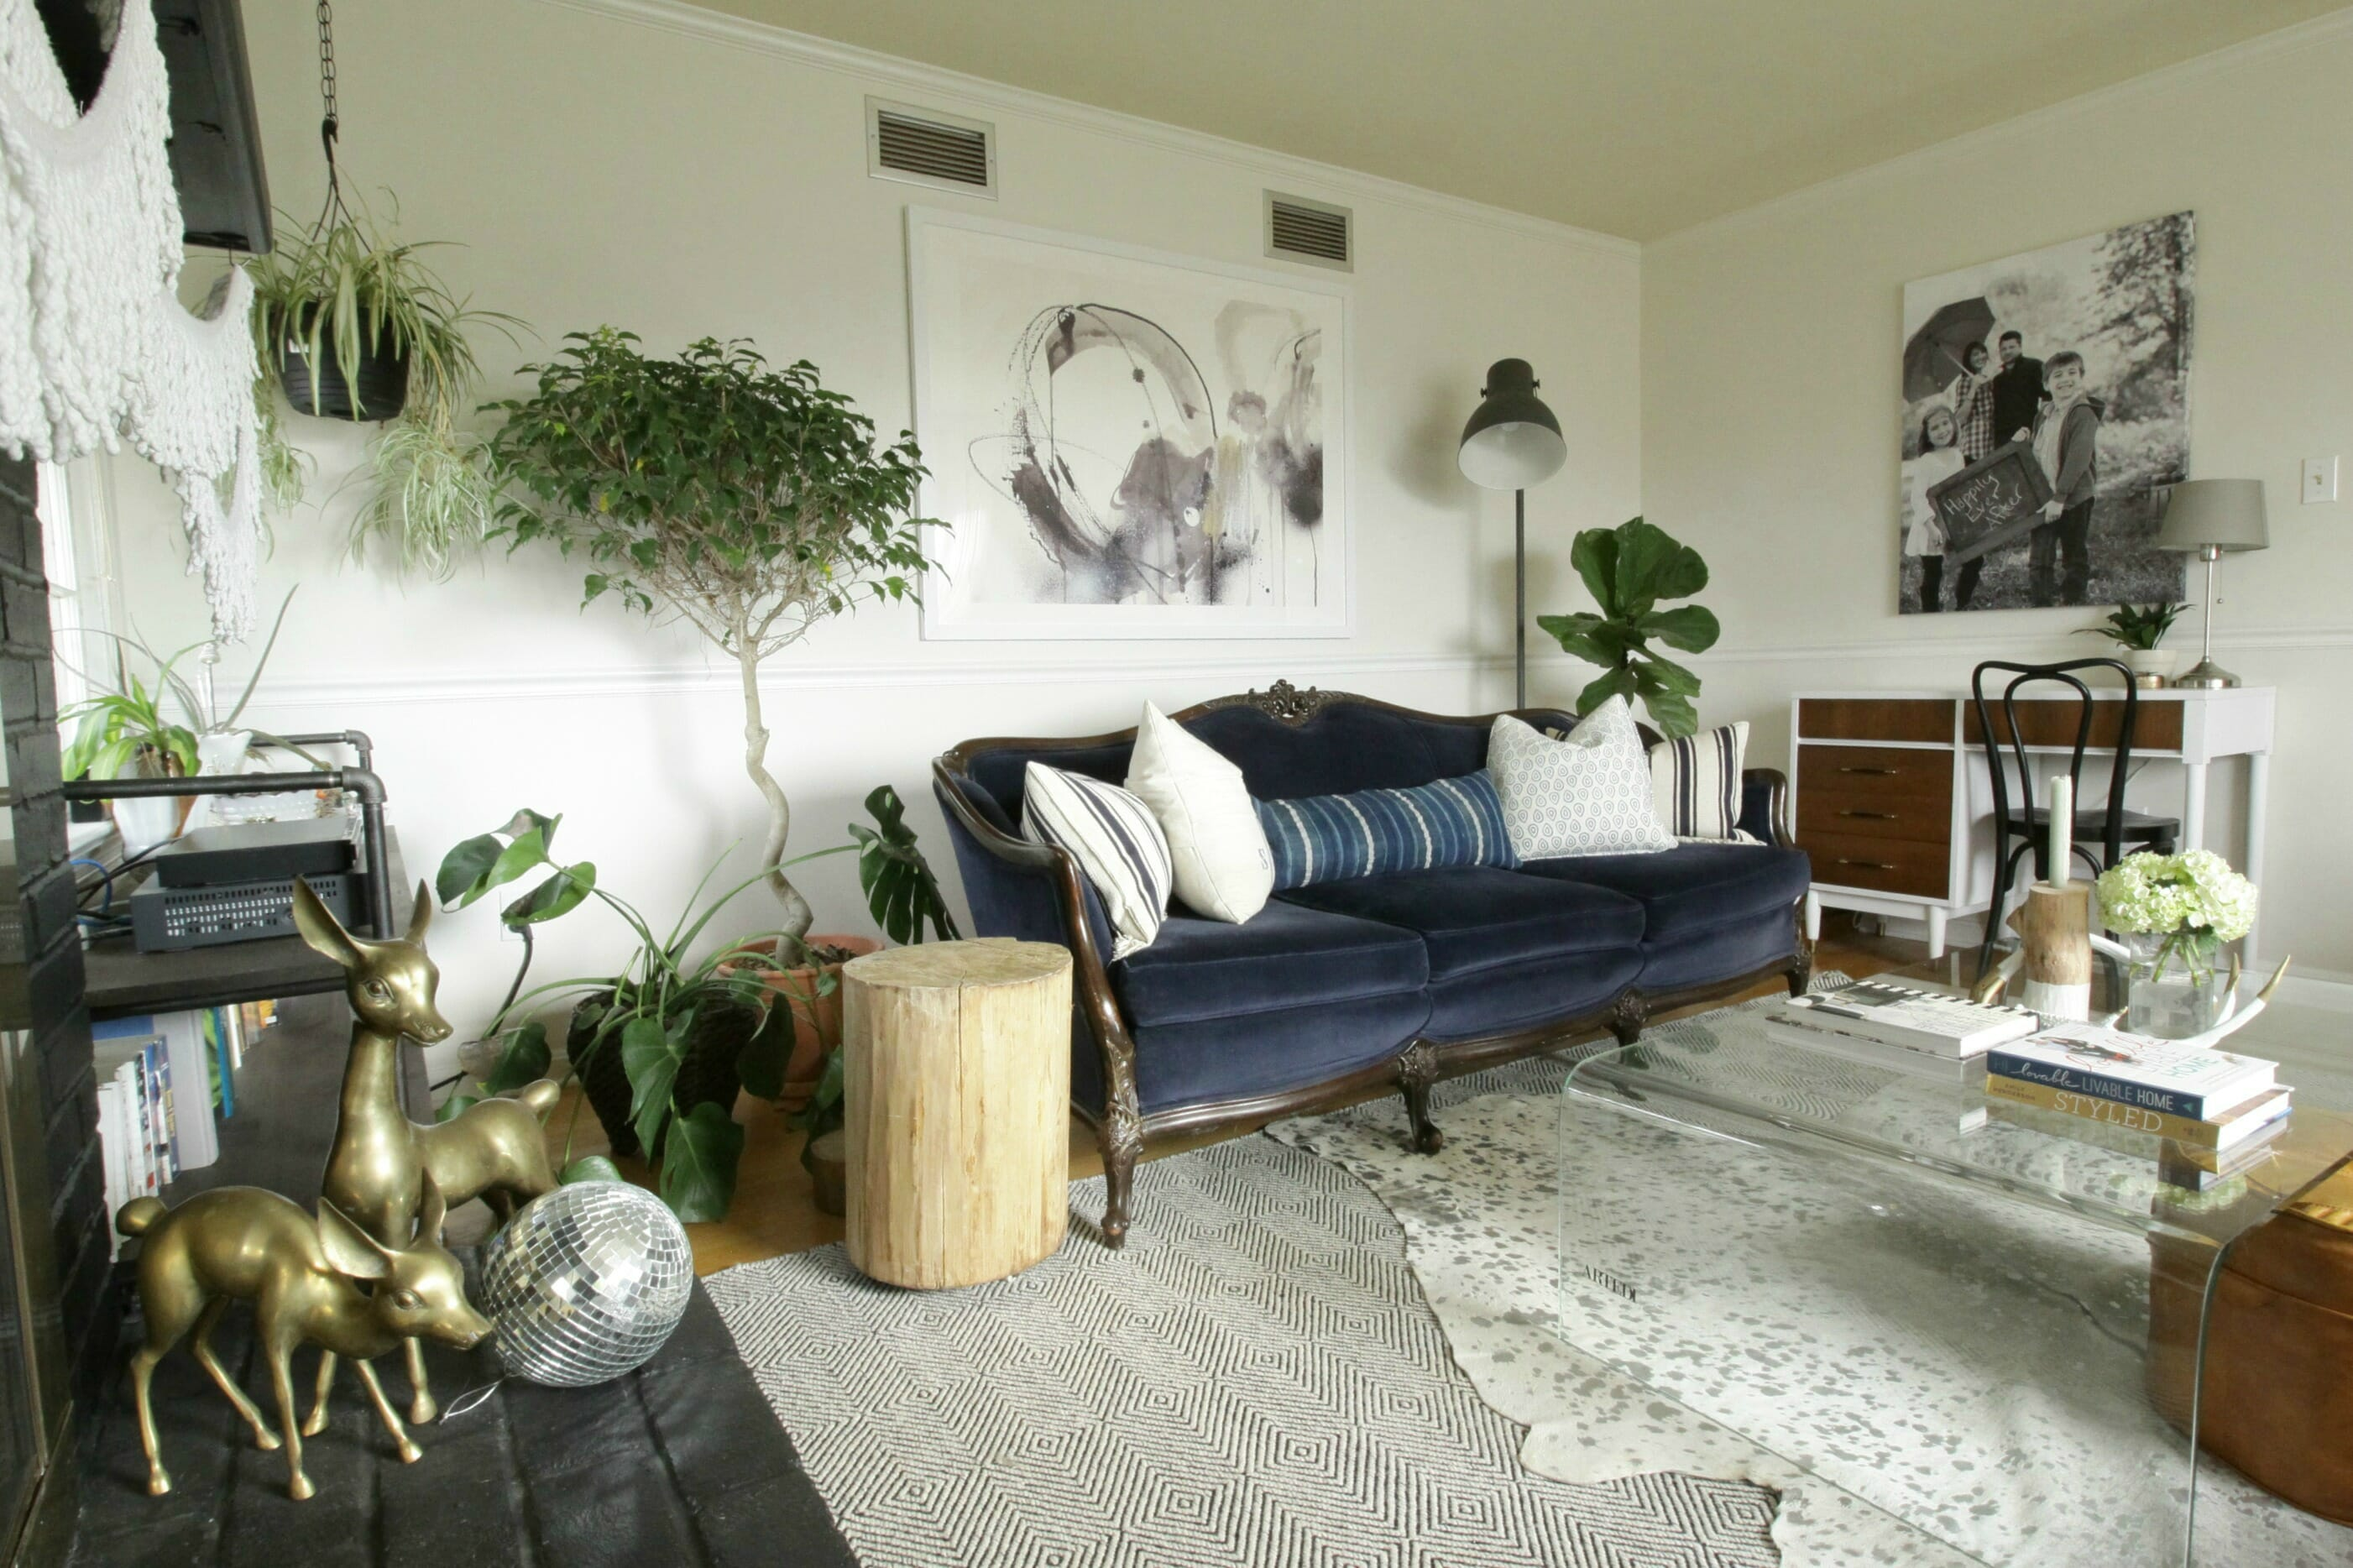 Living Room Large Scale Modern Art From Minted Boho Eclectic